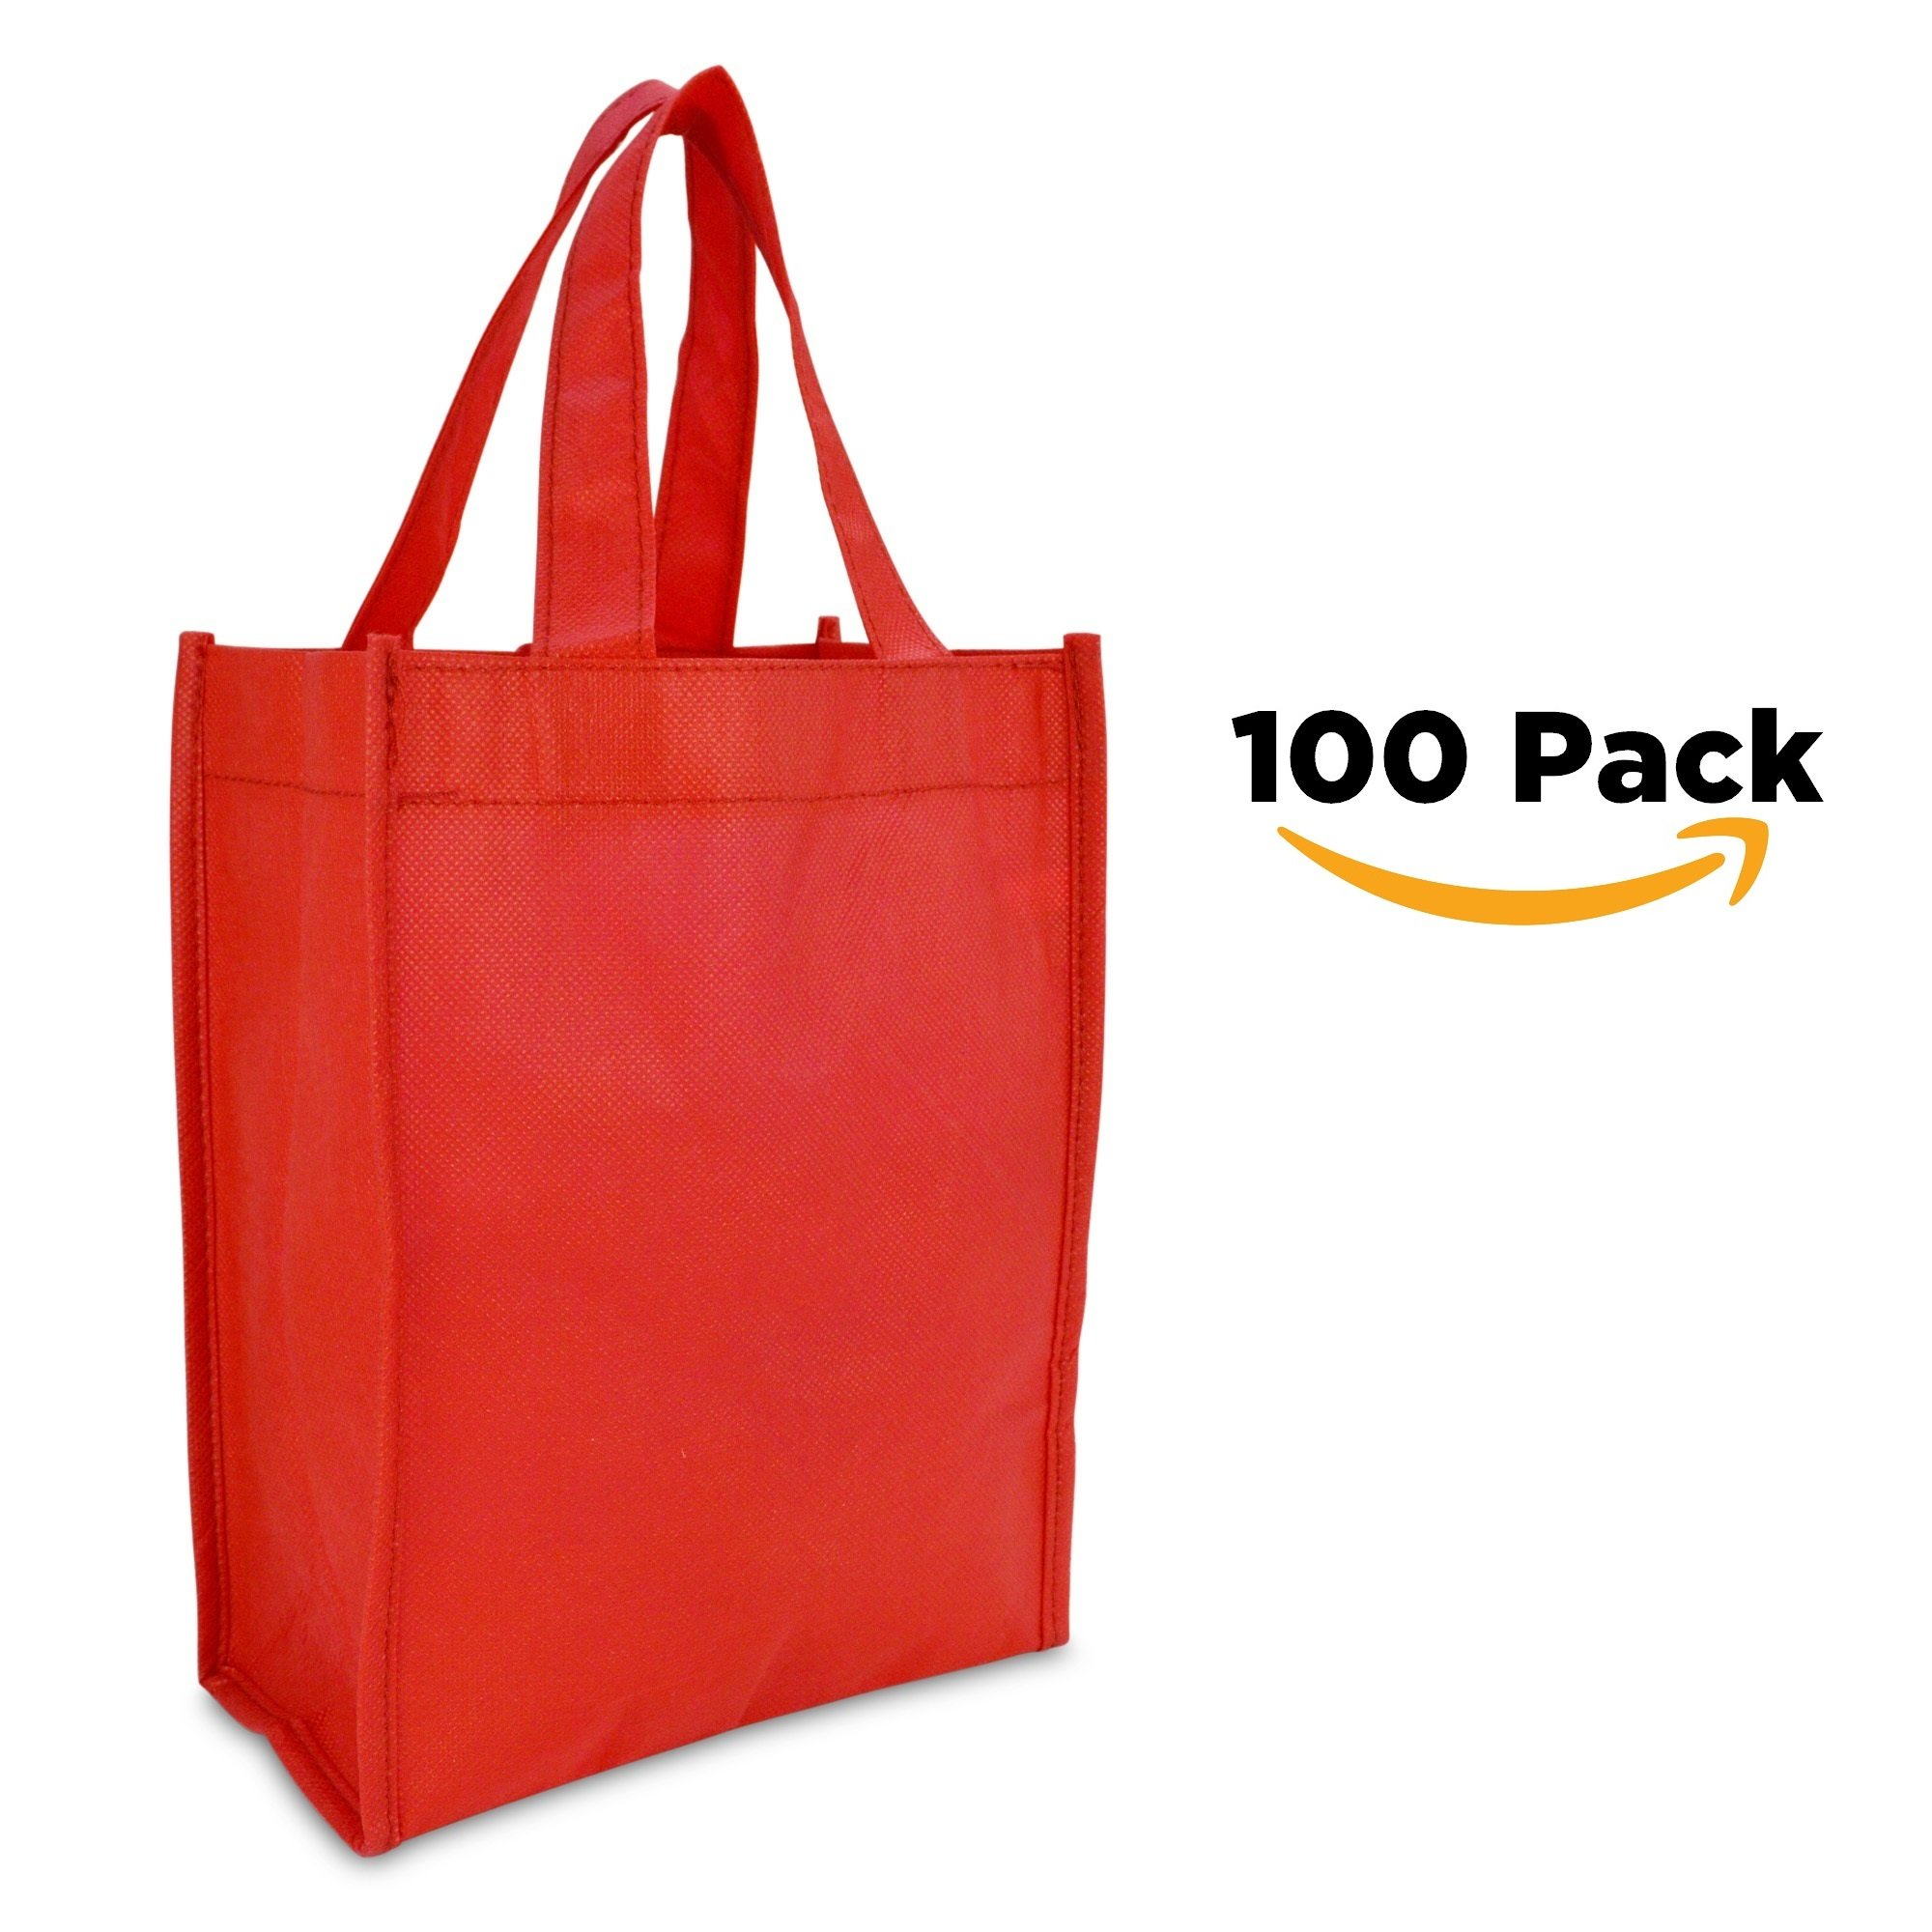 DALIX 10'' Mini Shopping Totes Small Resuseable Bags for Women and Children in Red-100 PACK